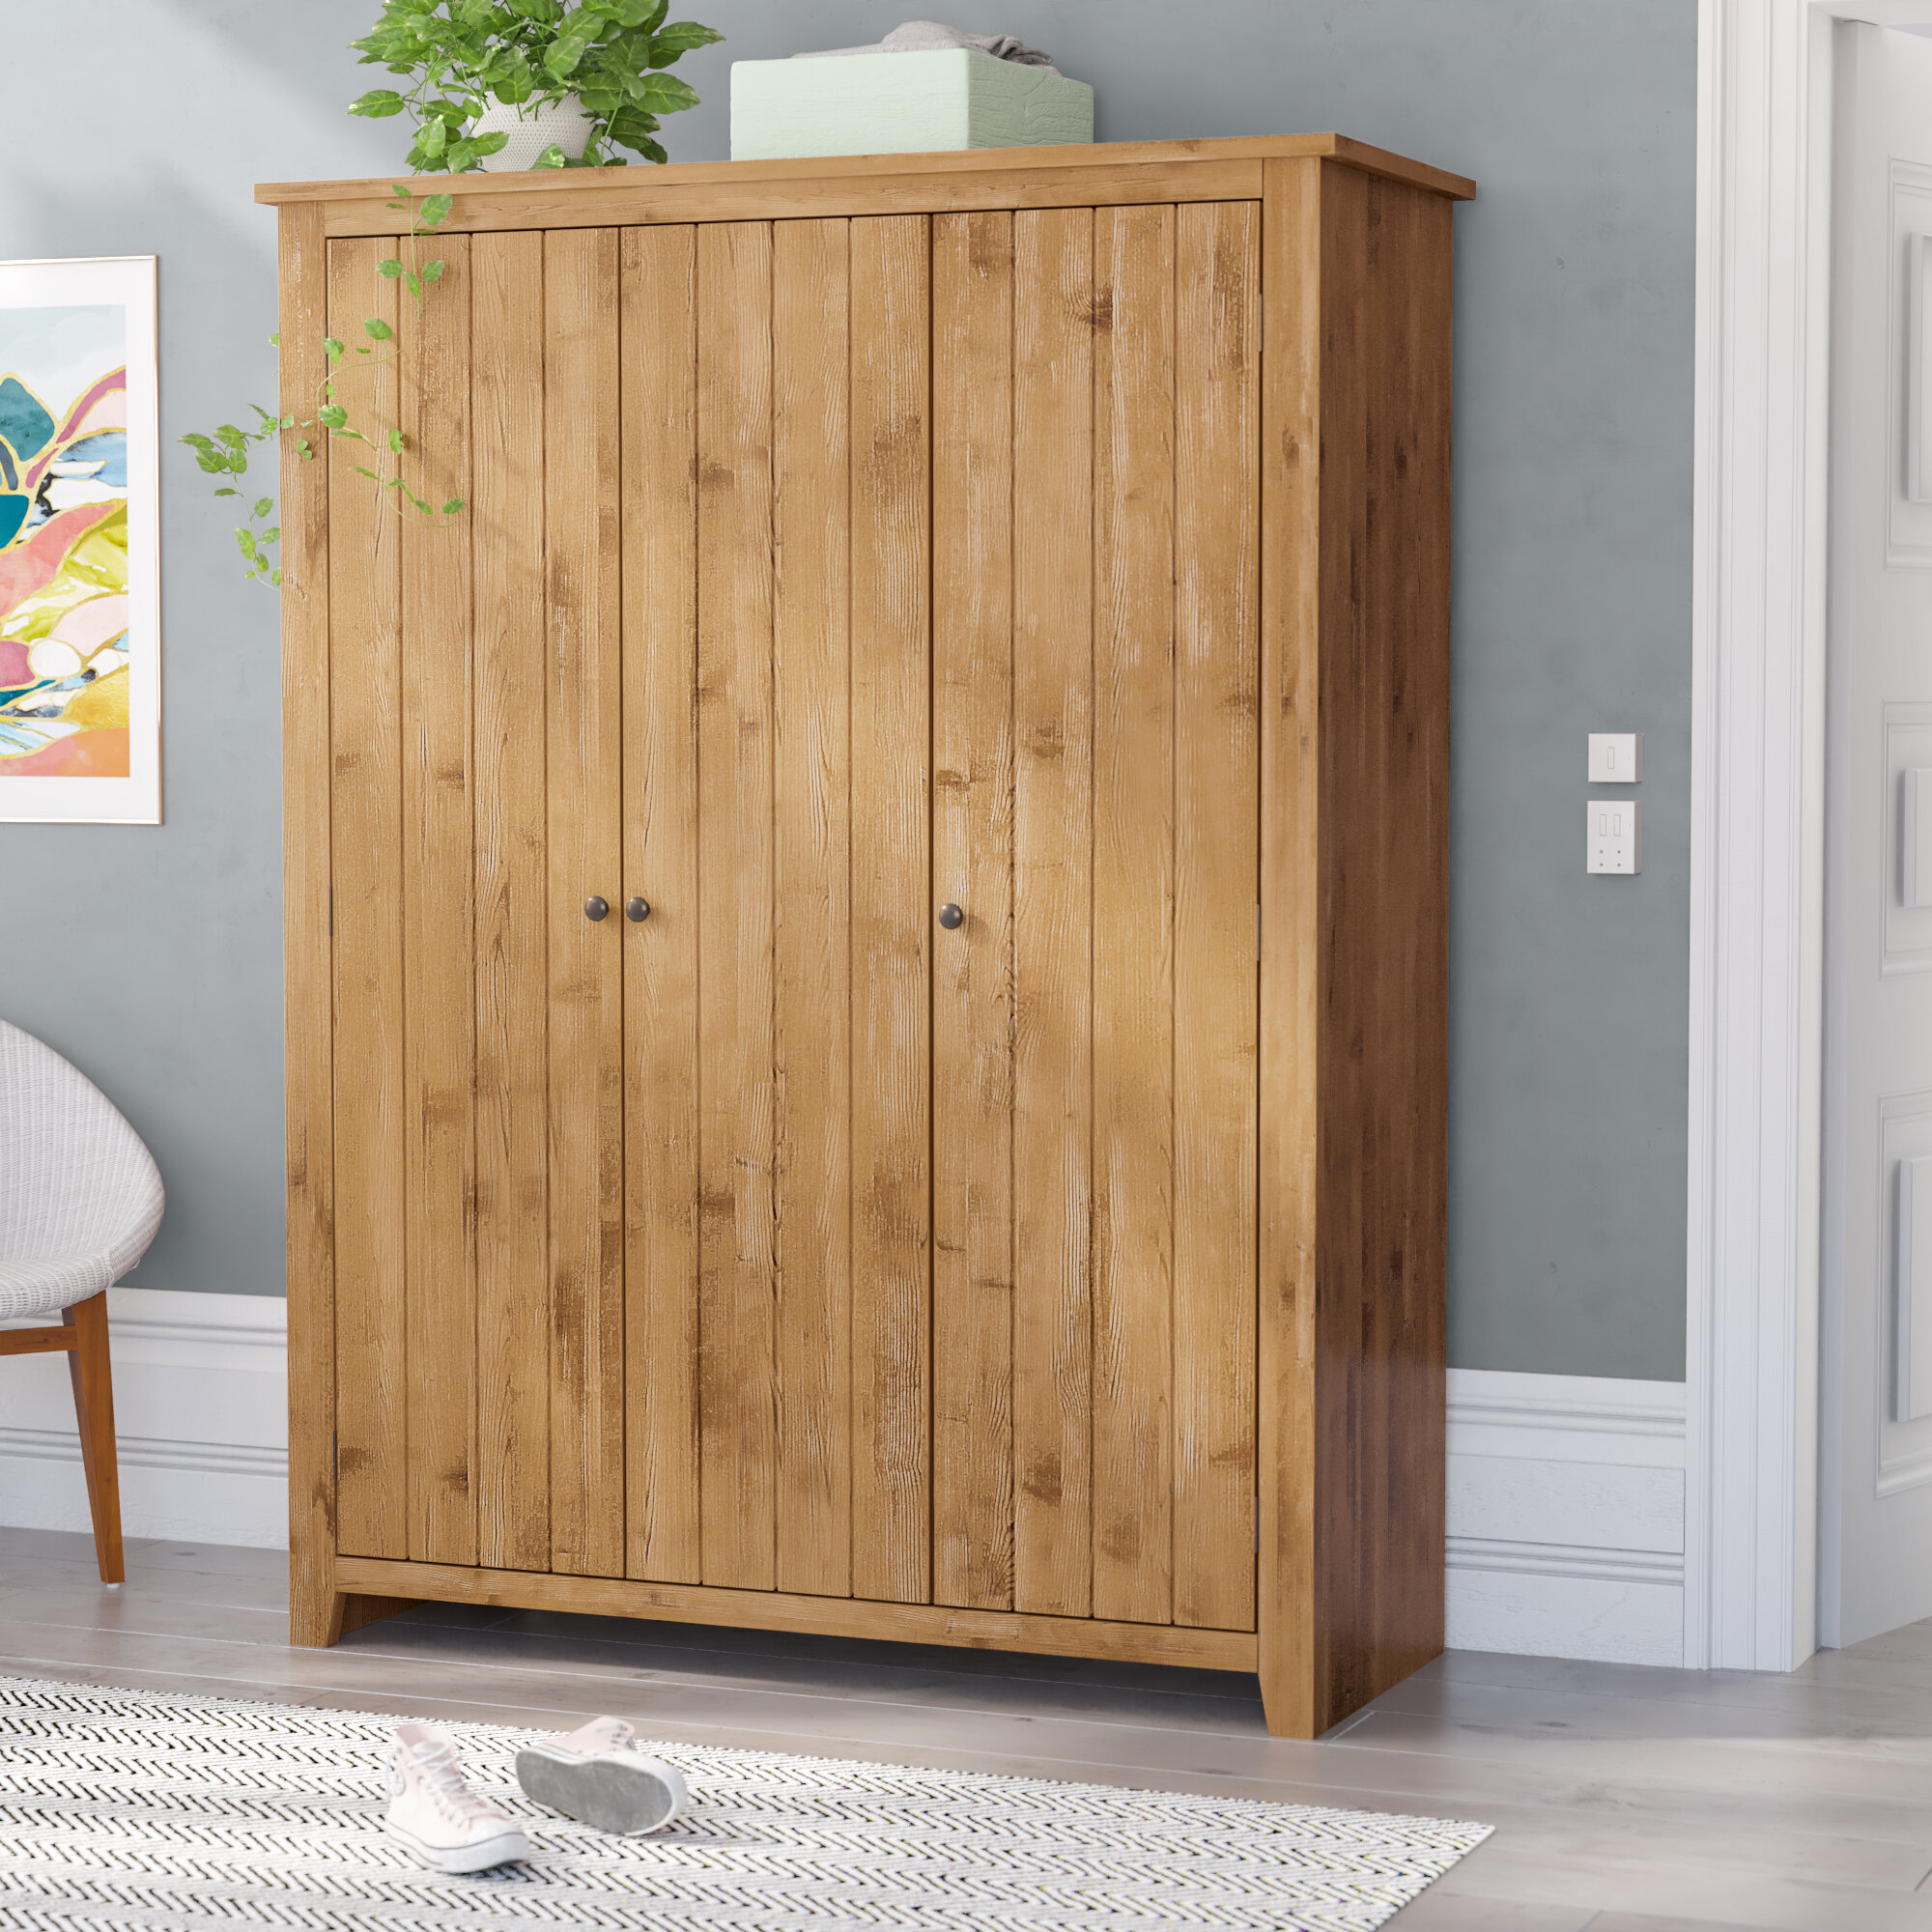 ClassicLiving Throop 3 Door Wardrobe & Reviews | Wayfair.co.uk